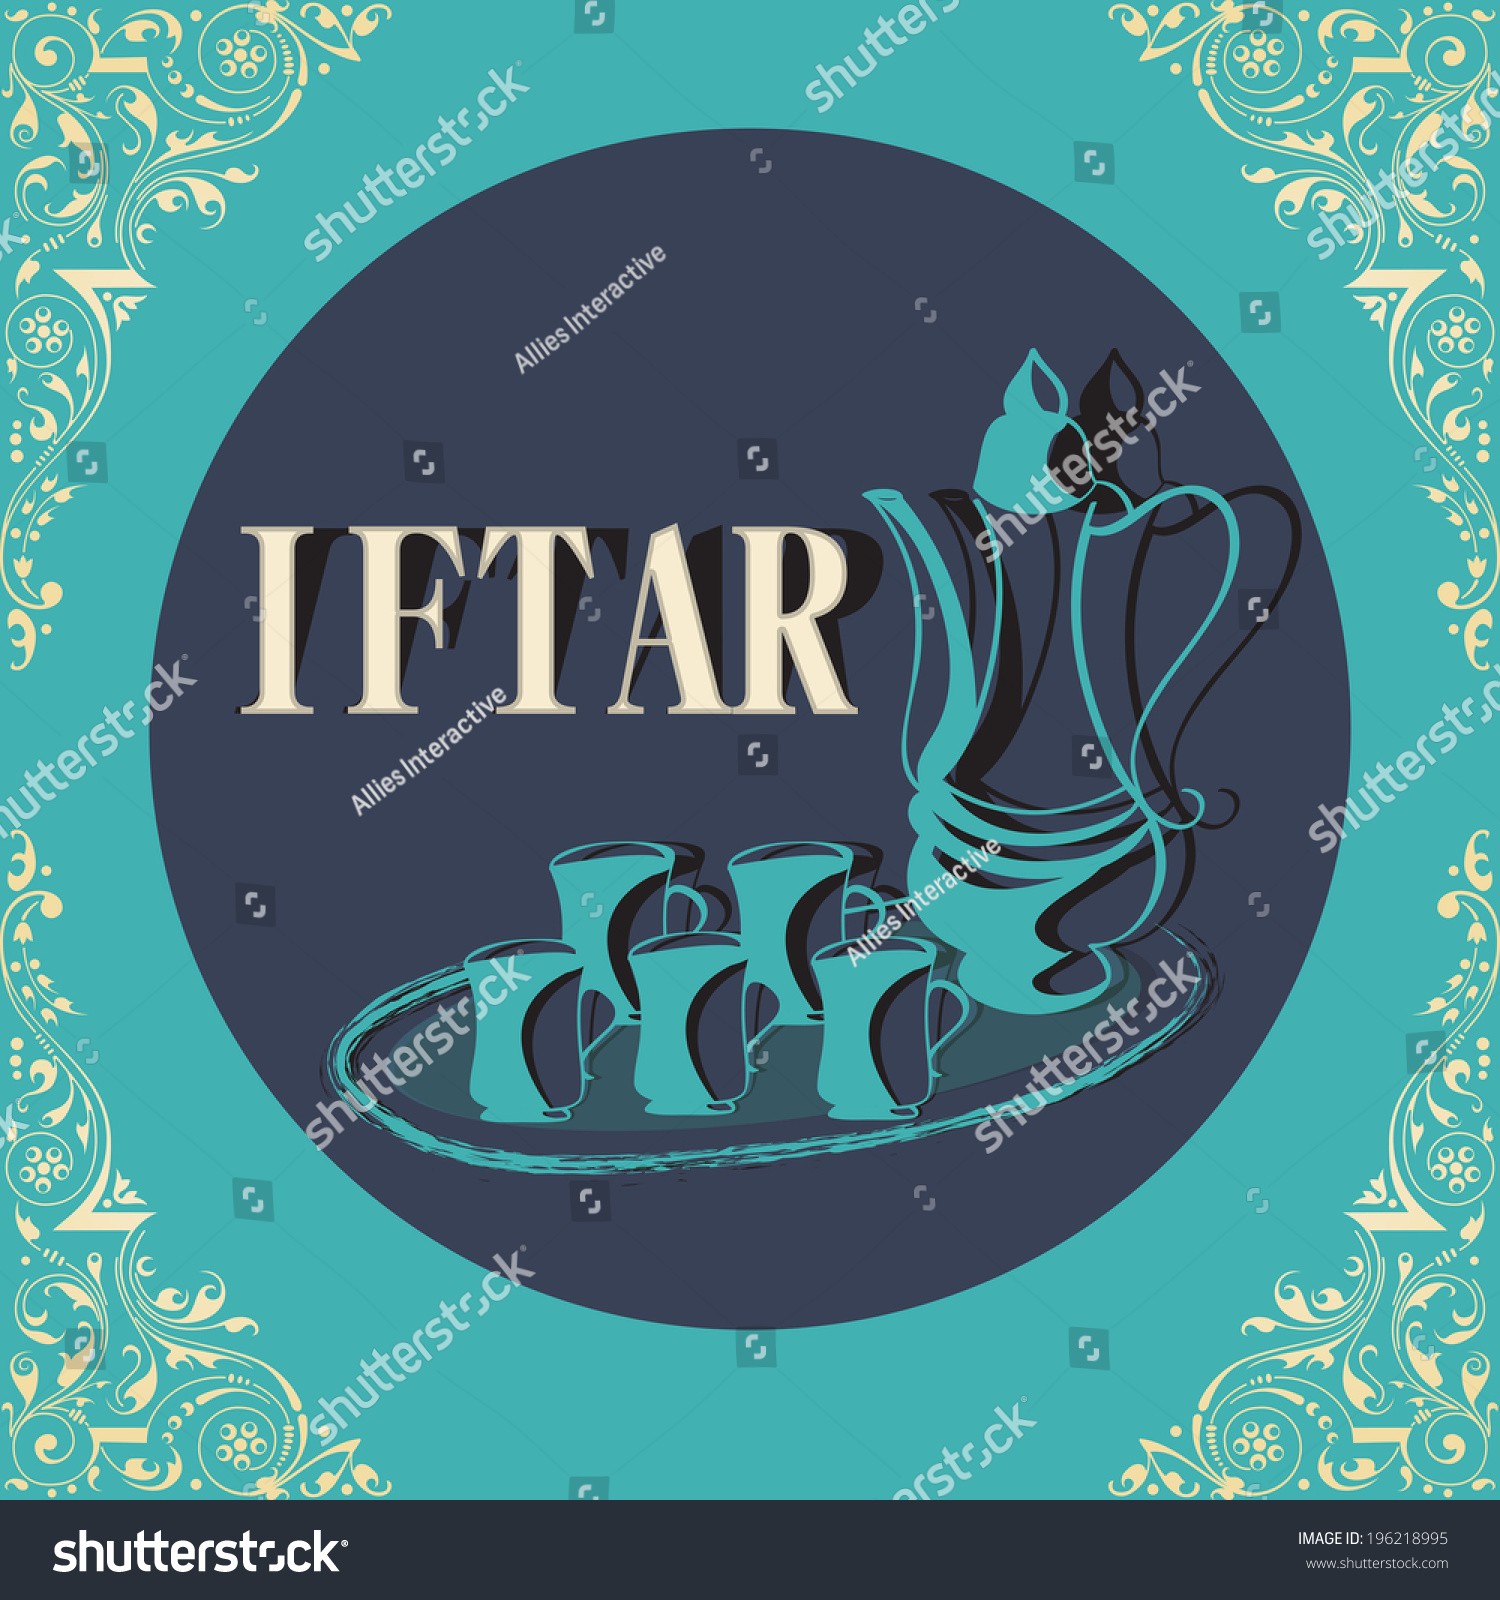 Beautiful Invitation Card Design Iftar Party Vector – Party Invitation Card Design